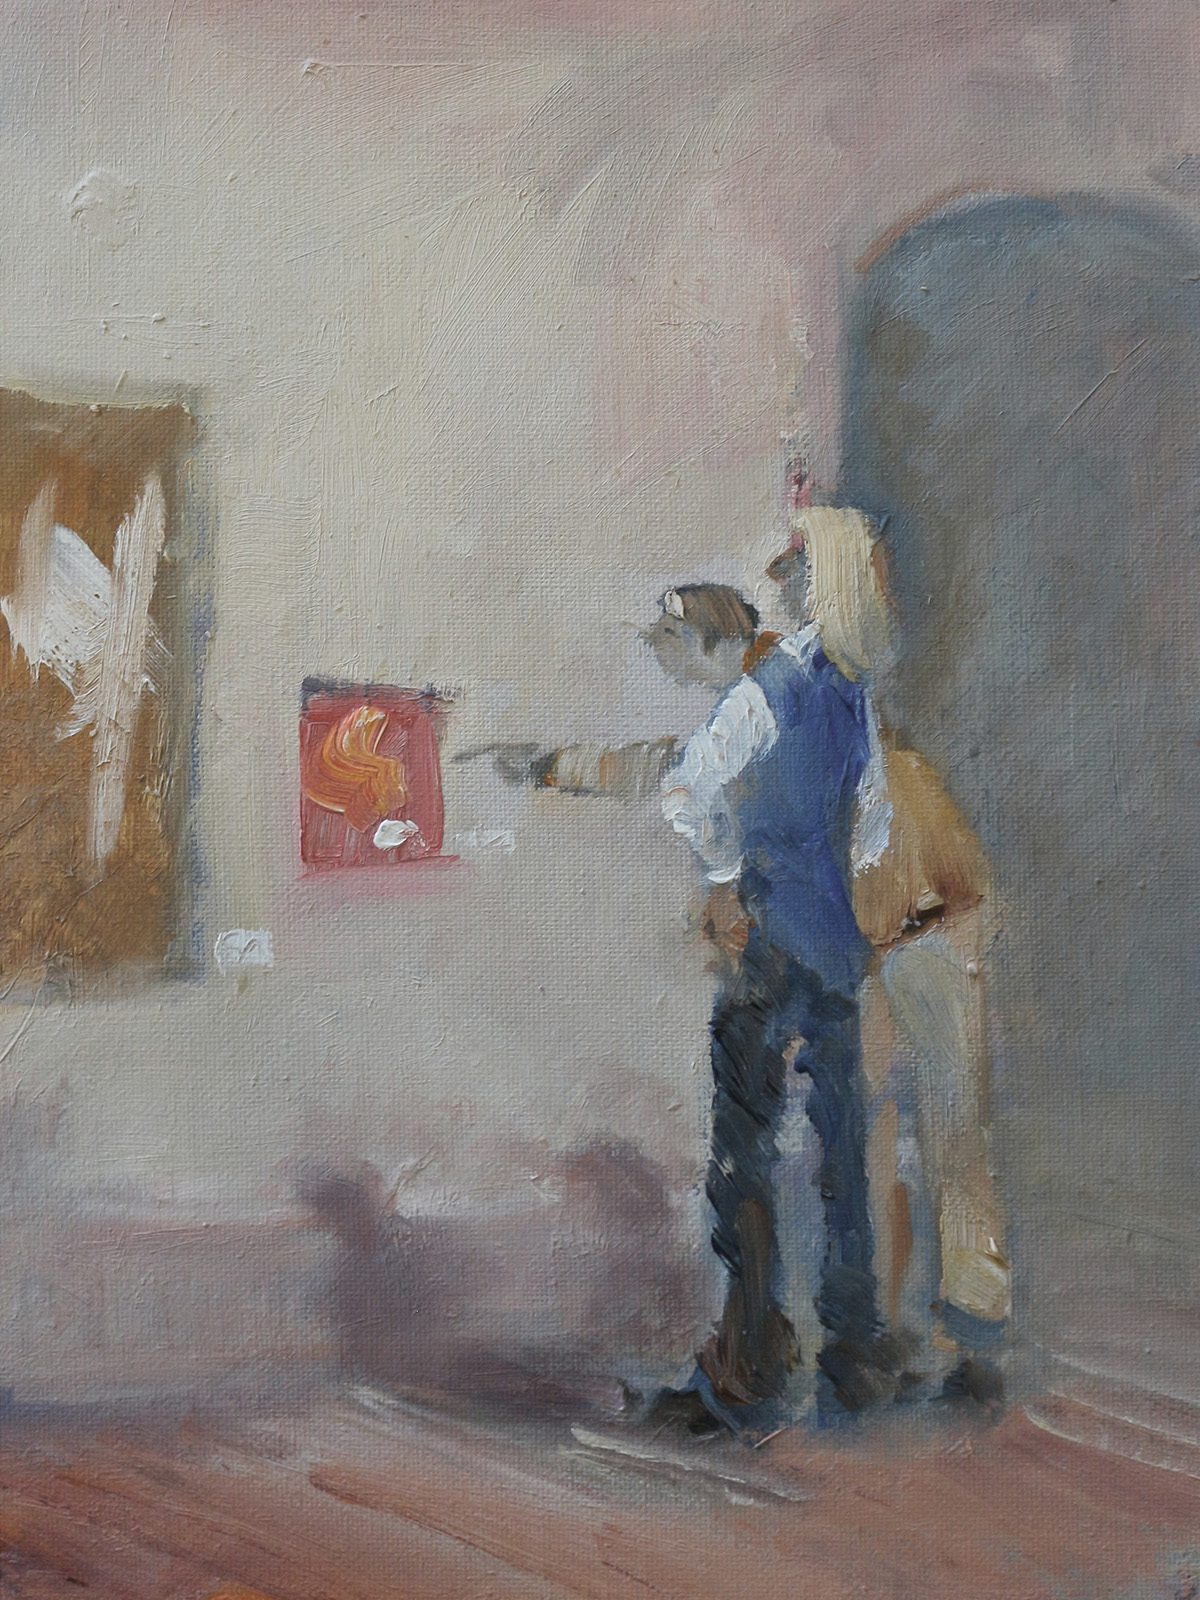 Oil on canvas study of art lovers in gallery scene by Stewart Taylor